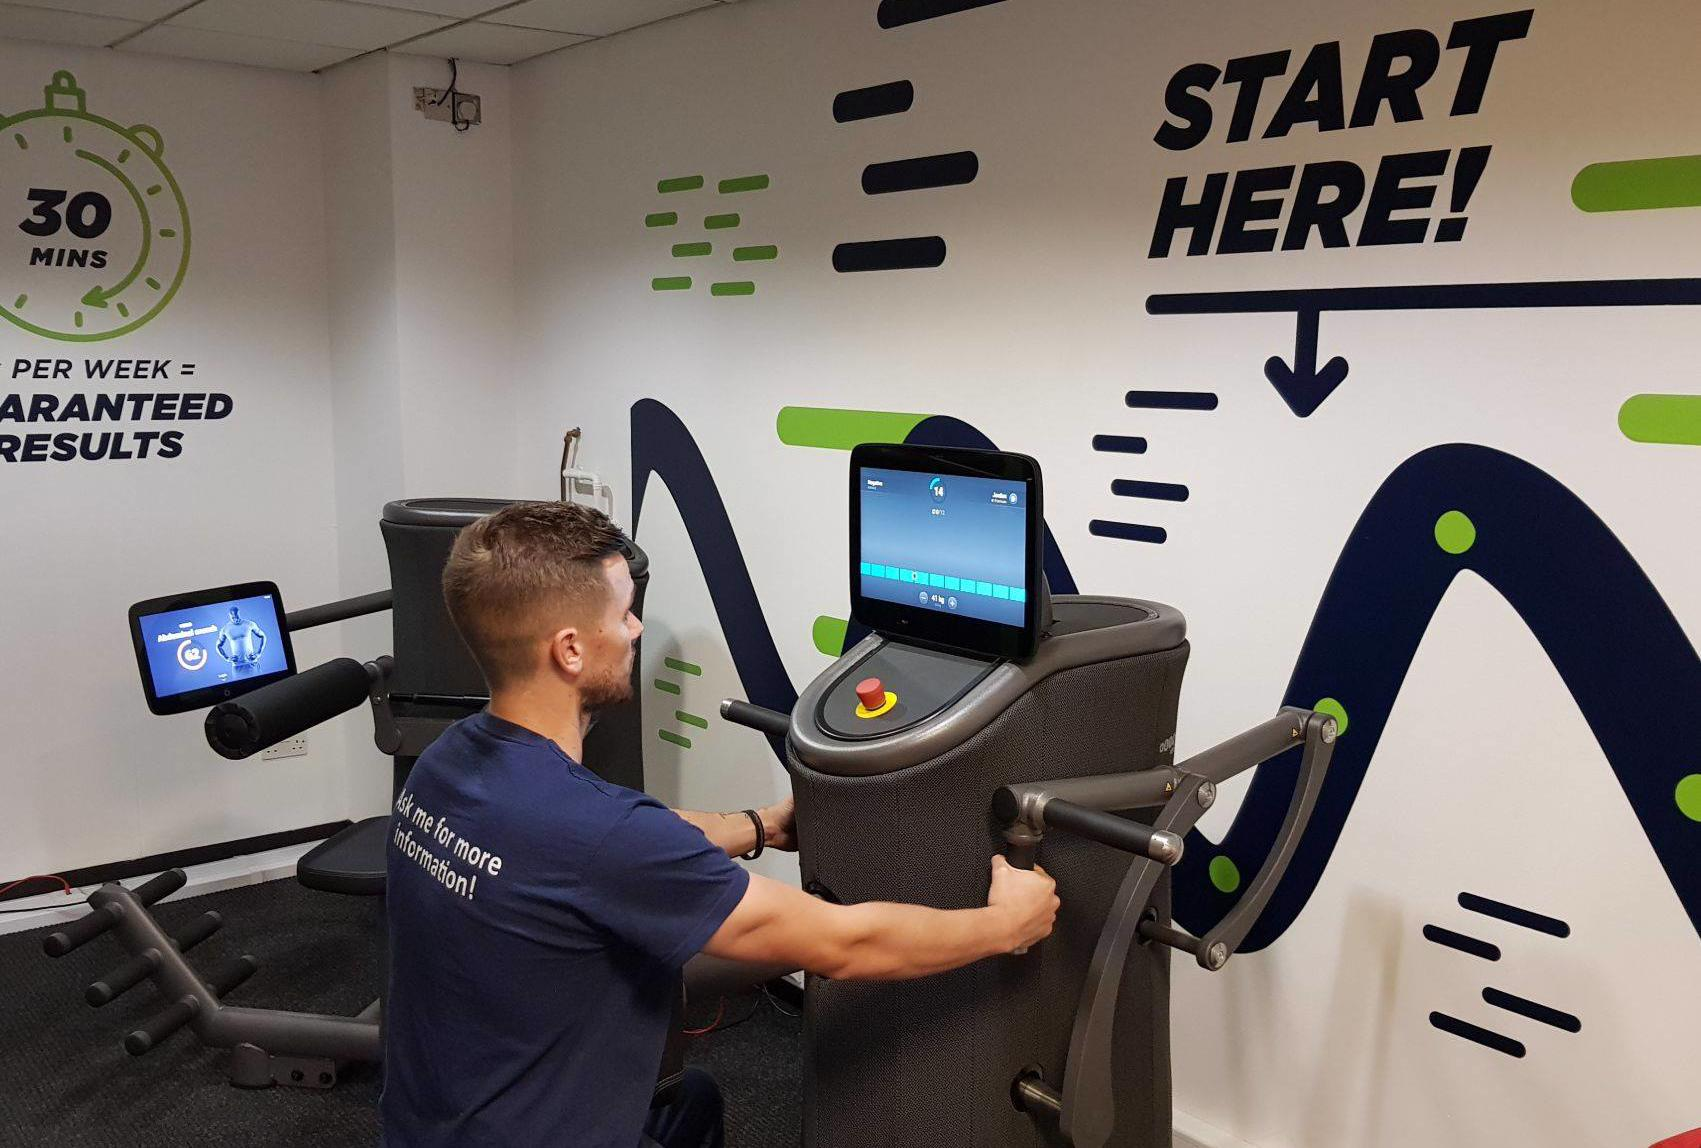 Instructor Jordan using the Express Fitness equipment